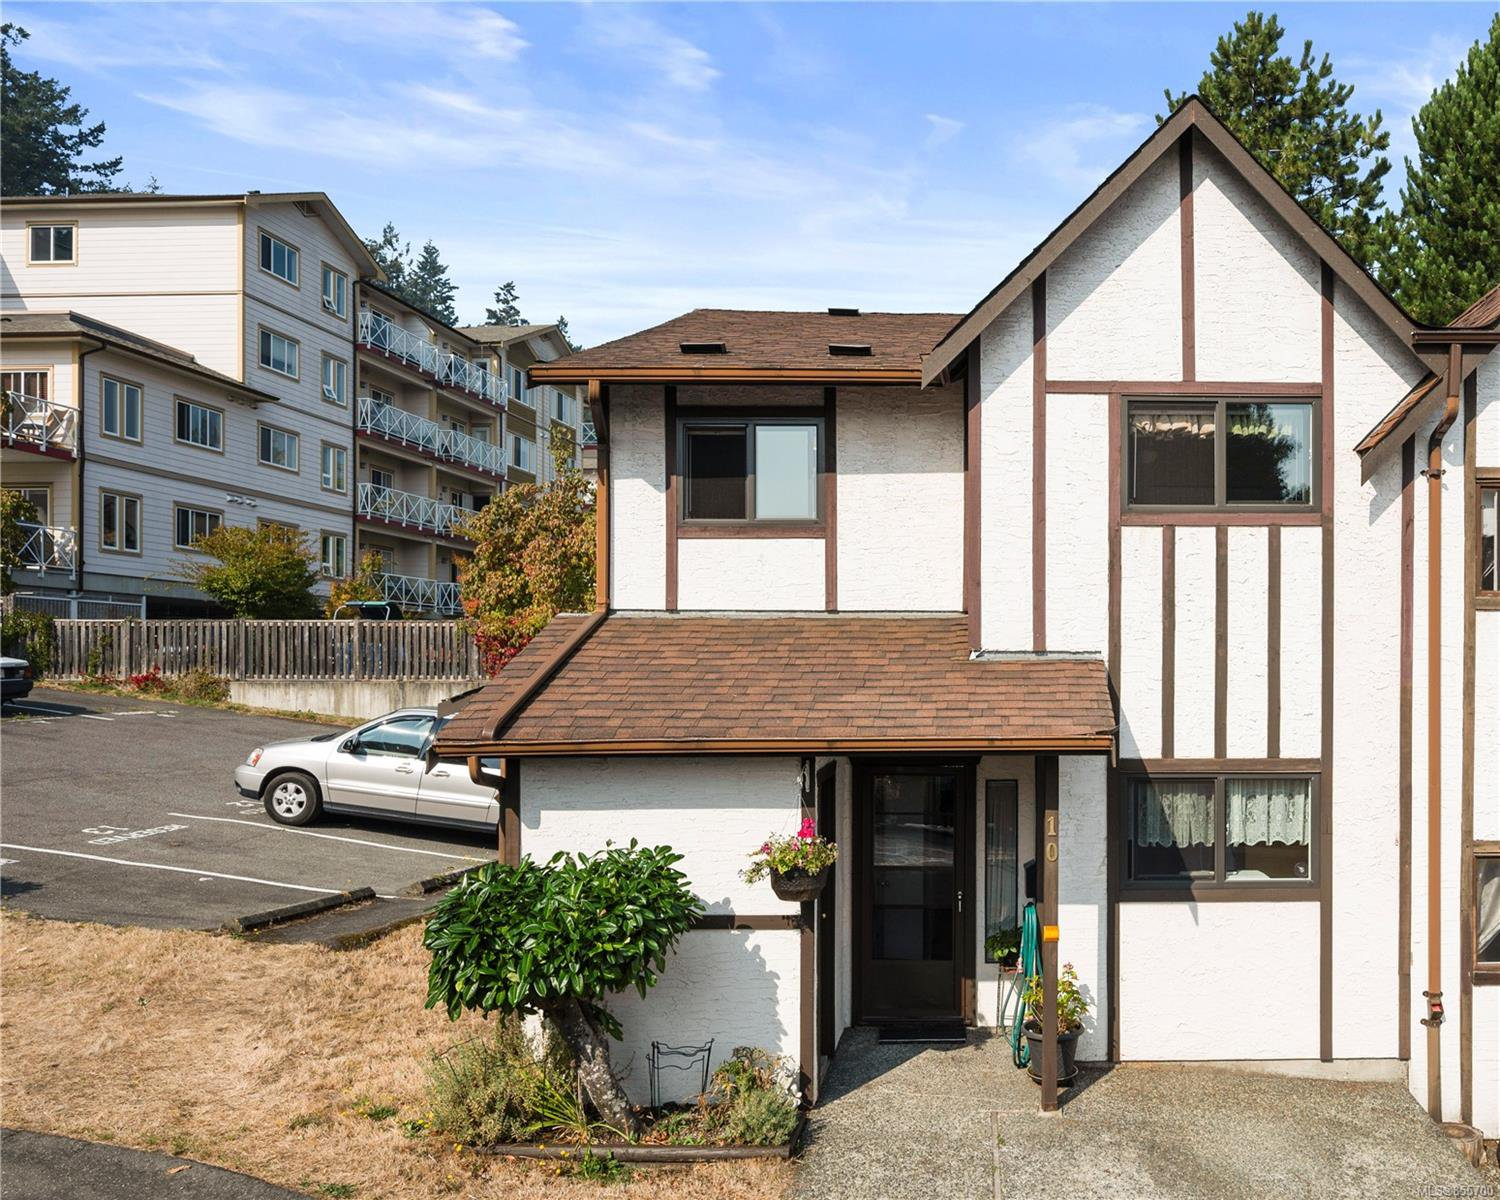 Main Photo: 10 379 Wale Rd in : Co Colwood Corners Row/Townhouse for sale (Colwood)  : MLS®# 855700